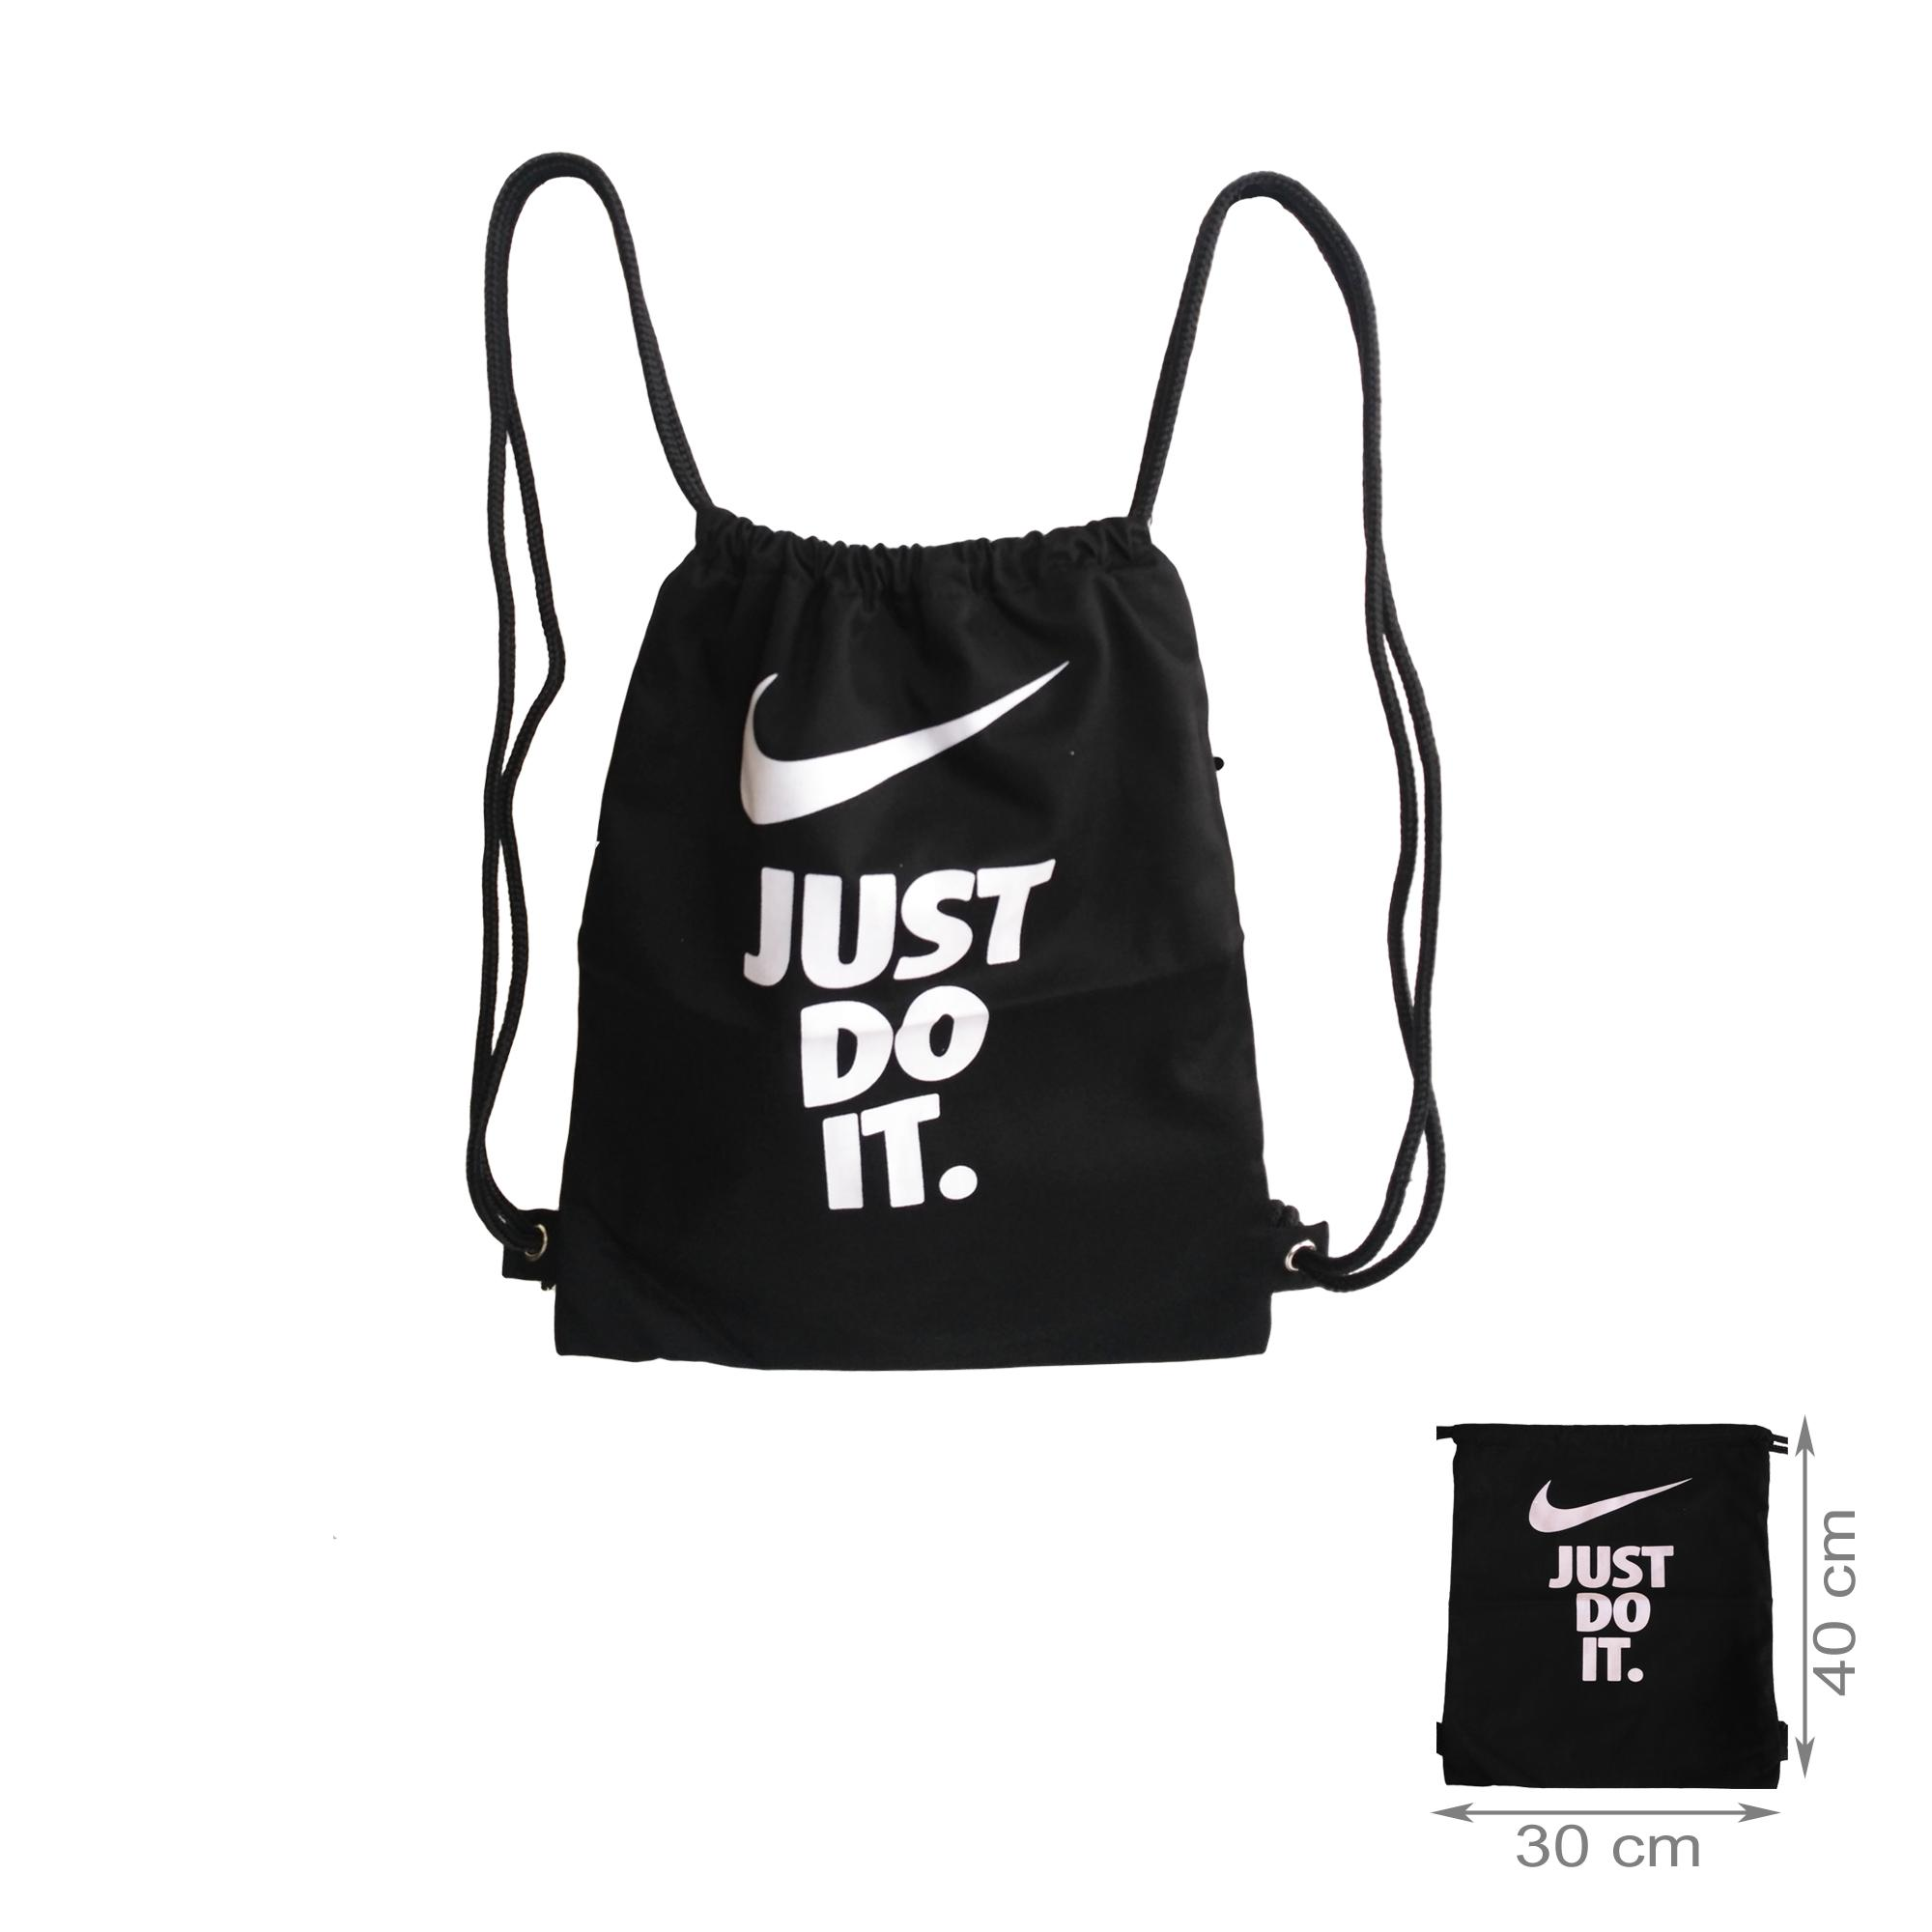 tas ransel stringbag / string bag / tas serut - just do it